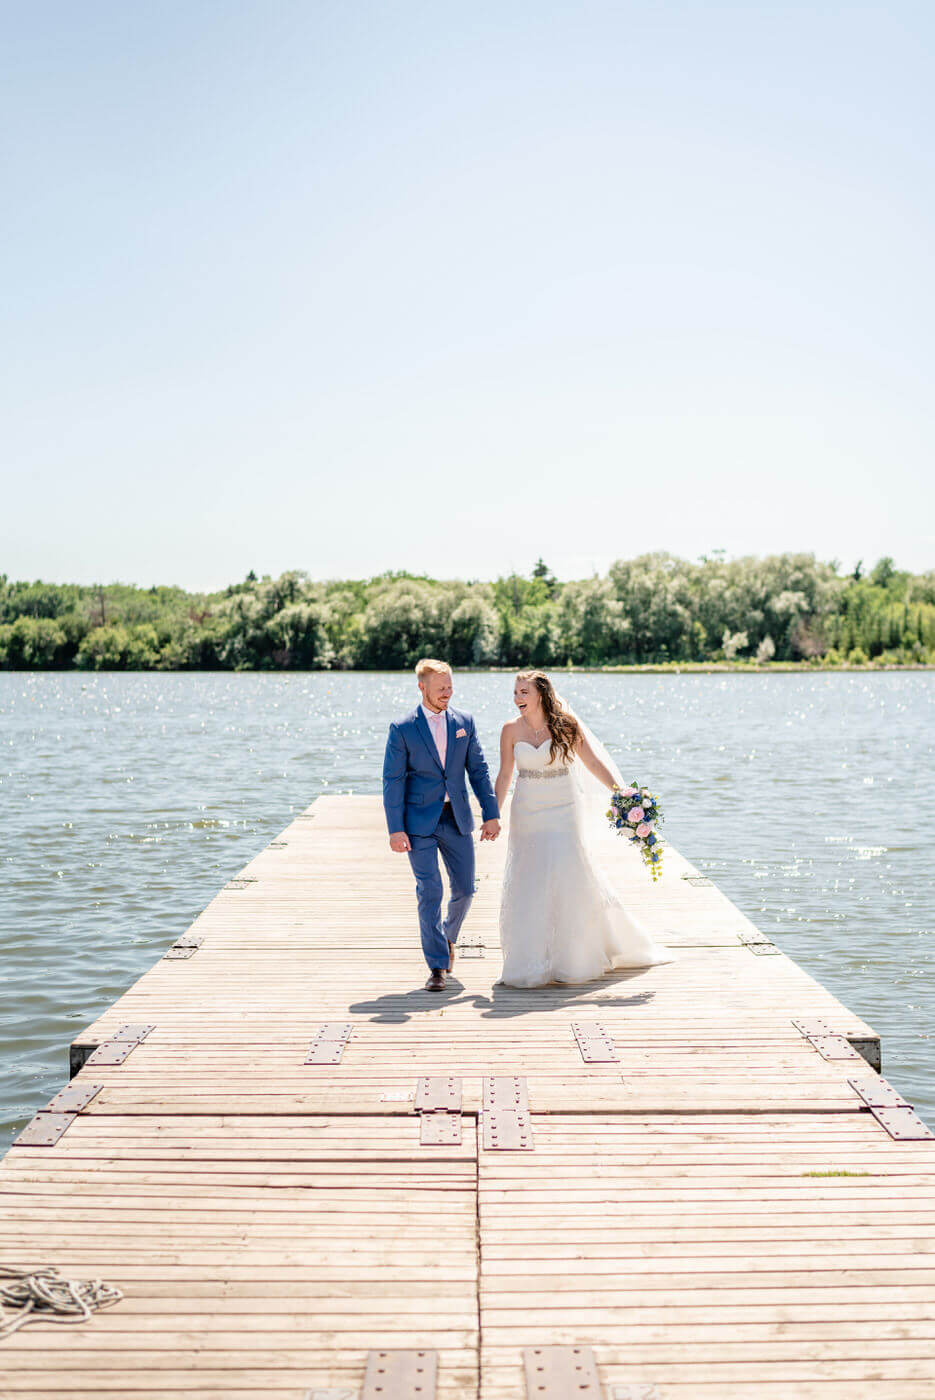 Evan & Chantel - Bride & Groom walking on dock on Wascana Lake in Regina